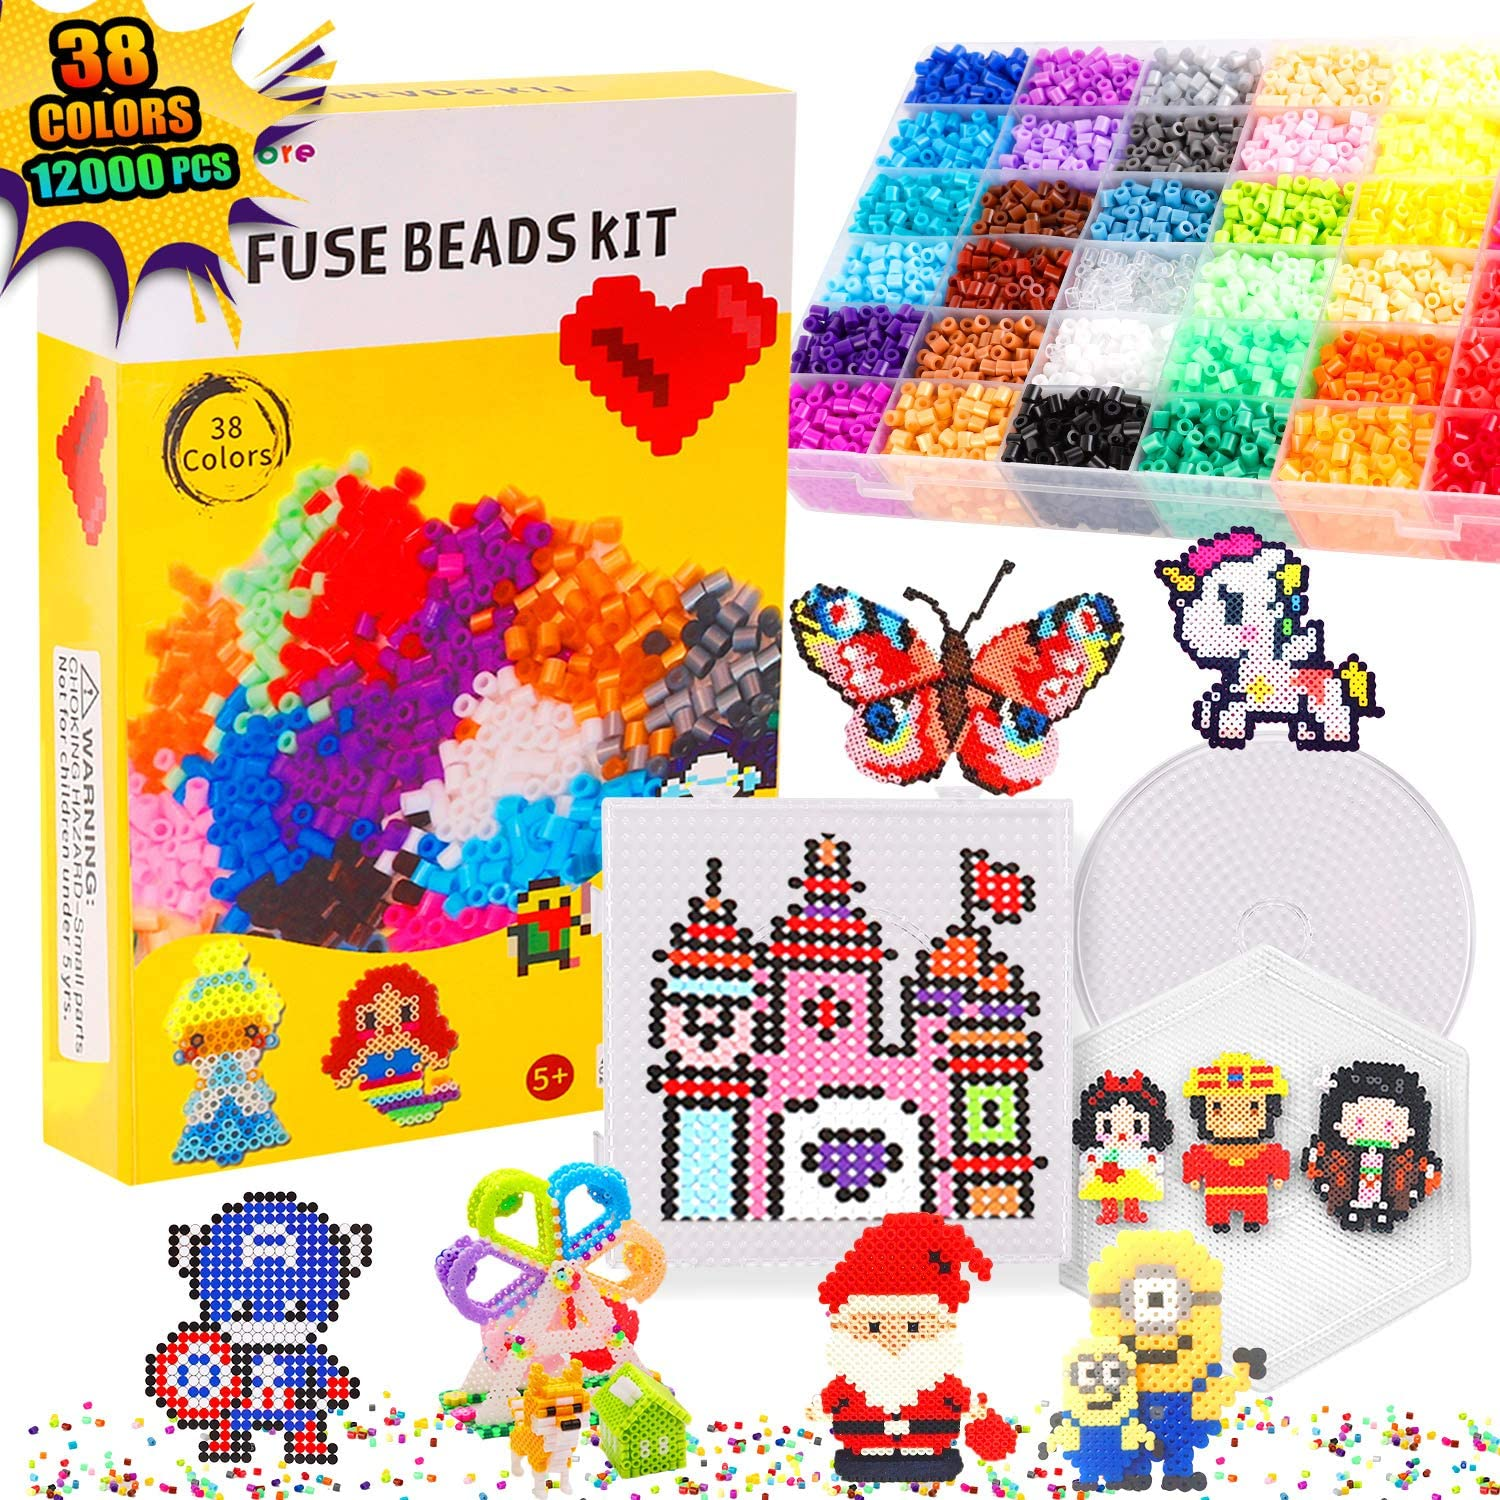 Bachmore Fuse Beads Craft Kit Melty Fusion Colored Beads 12,000pcs 38 Colors Pearler Craft Sets for Kids Including 7 Pegboards,Booklet Chain Accessories Activity Gift Toy For Boys and Girls Age 5 6 7